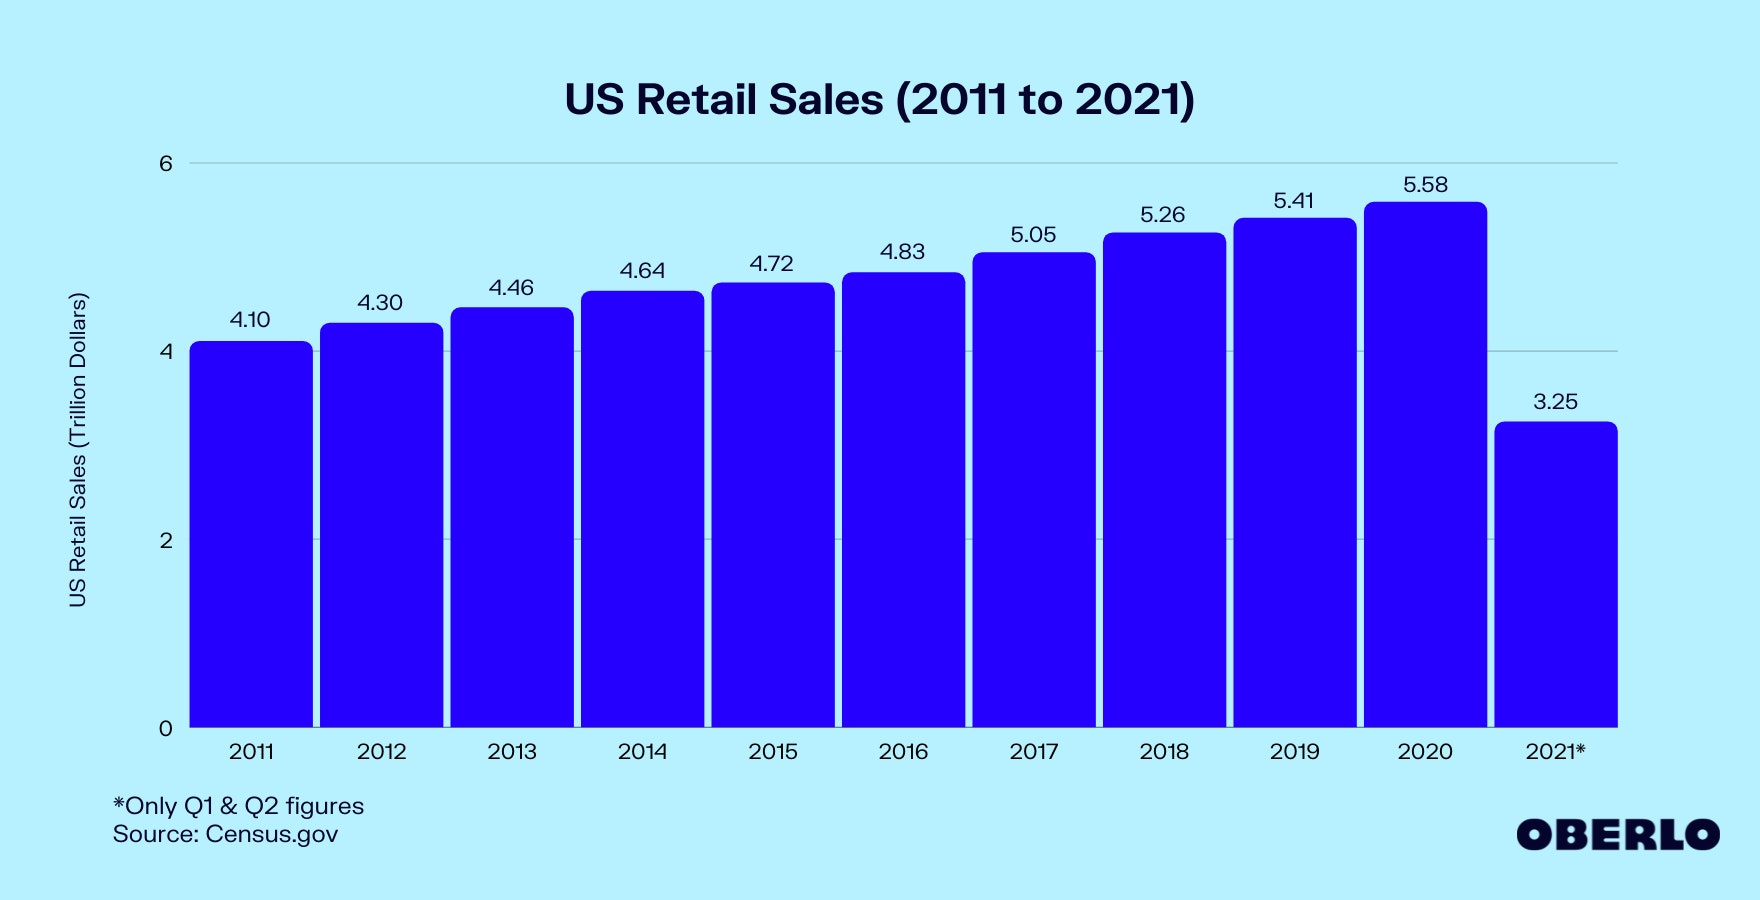 Chart of US Retail Sales (2011 to 2021)